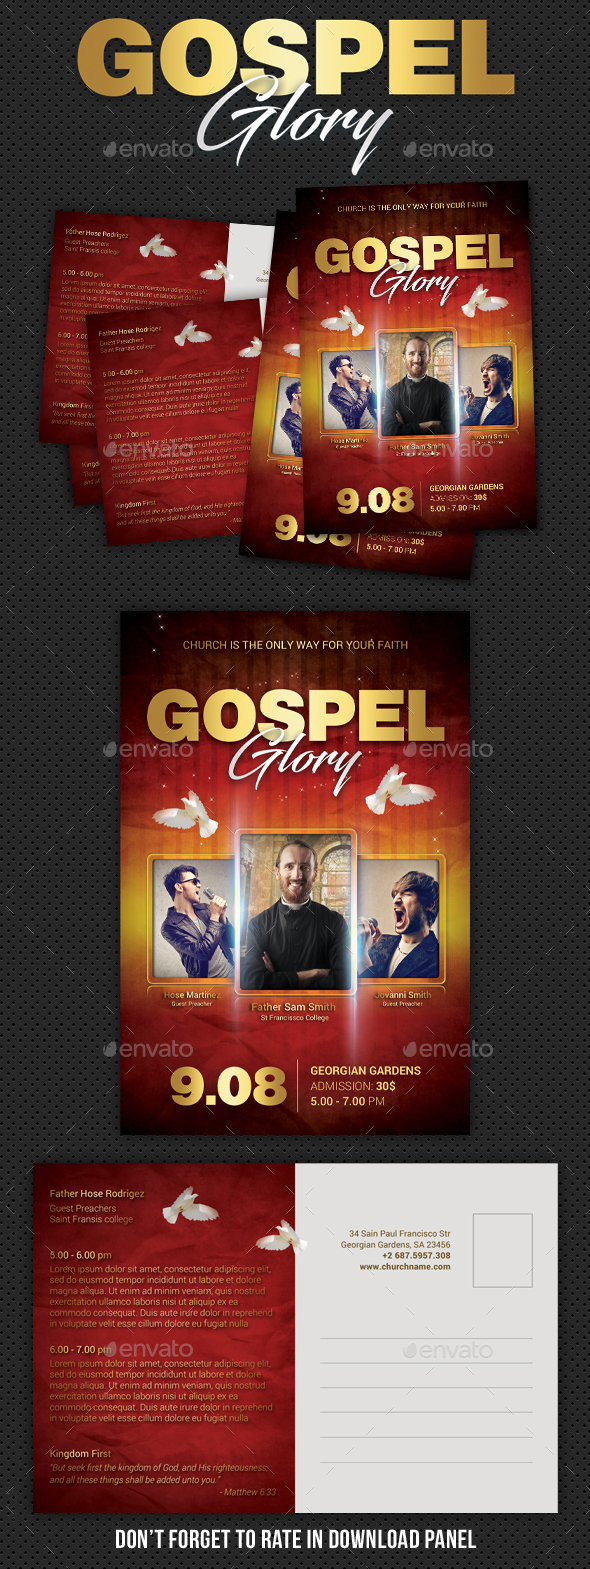 Gospel Fest Postcard V2 - Cards & Invites Print Templates